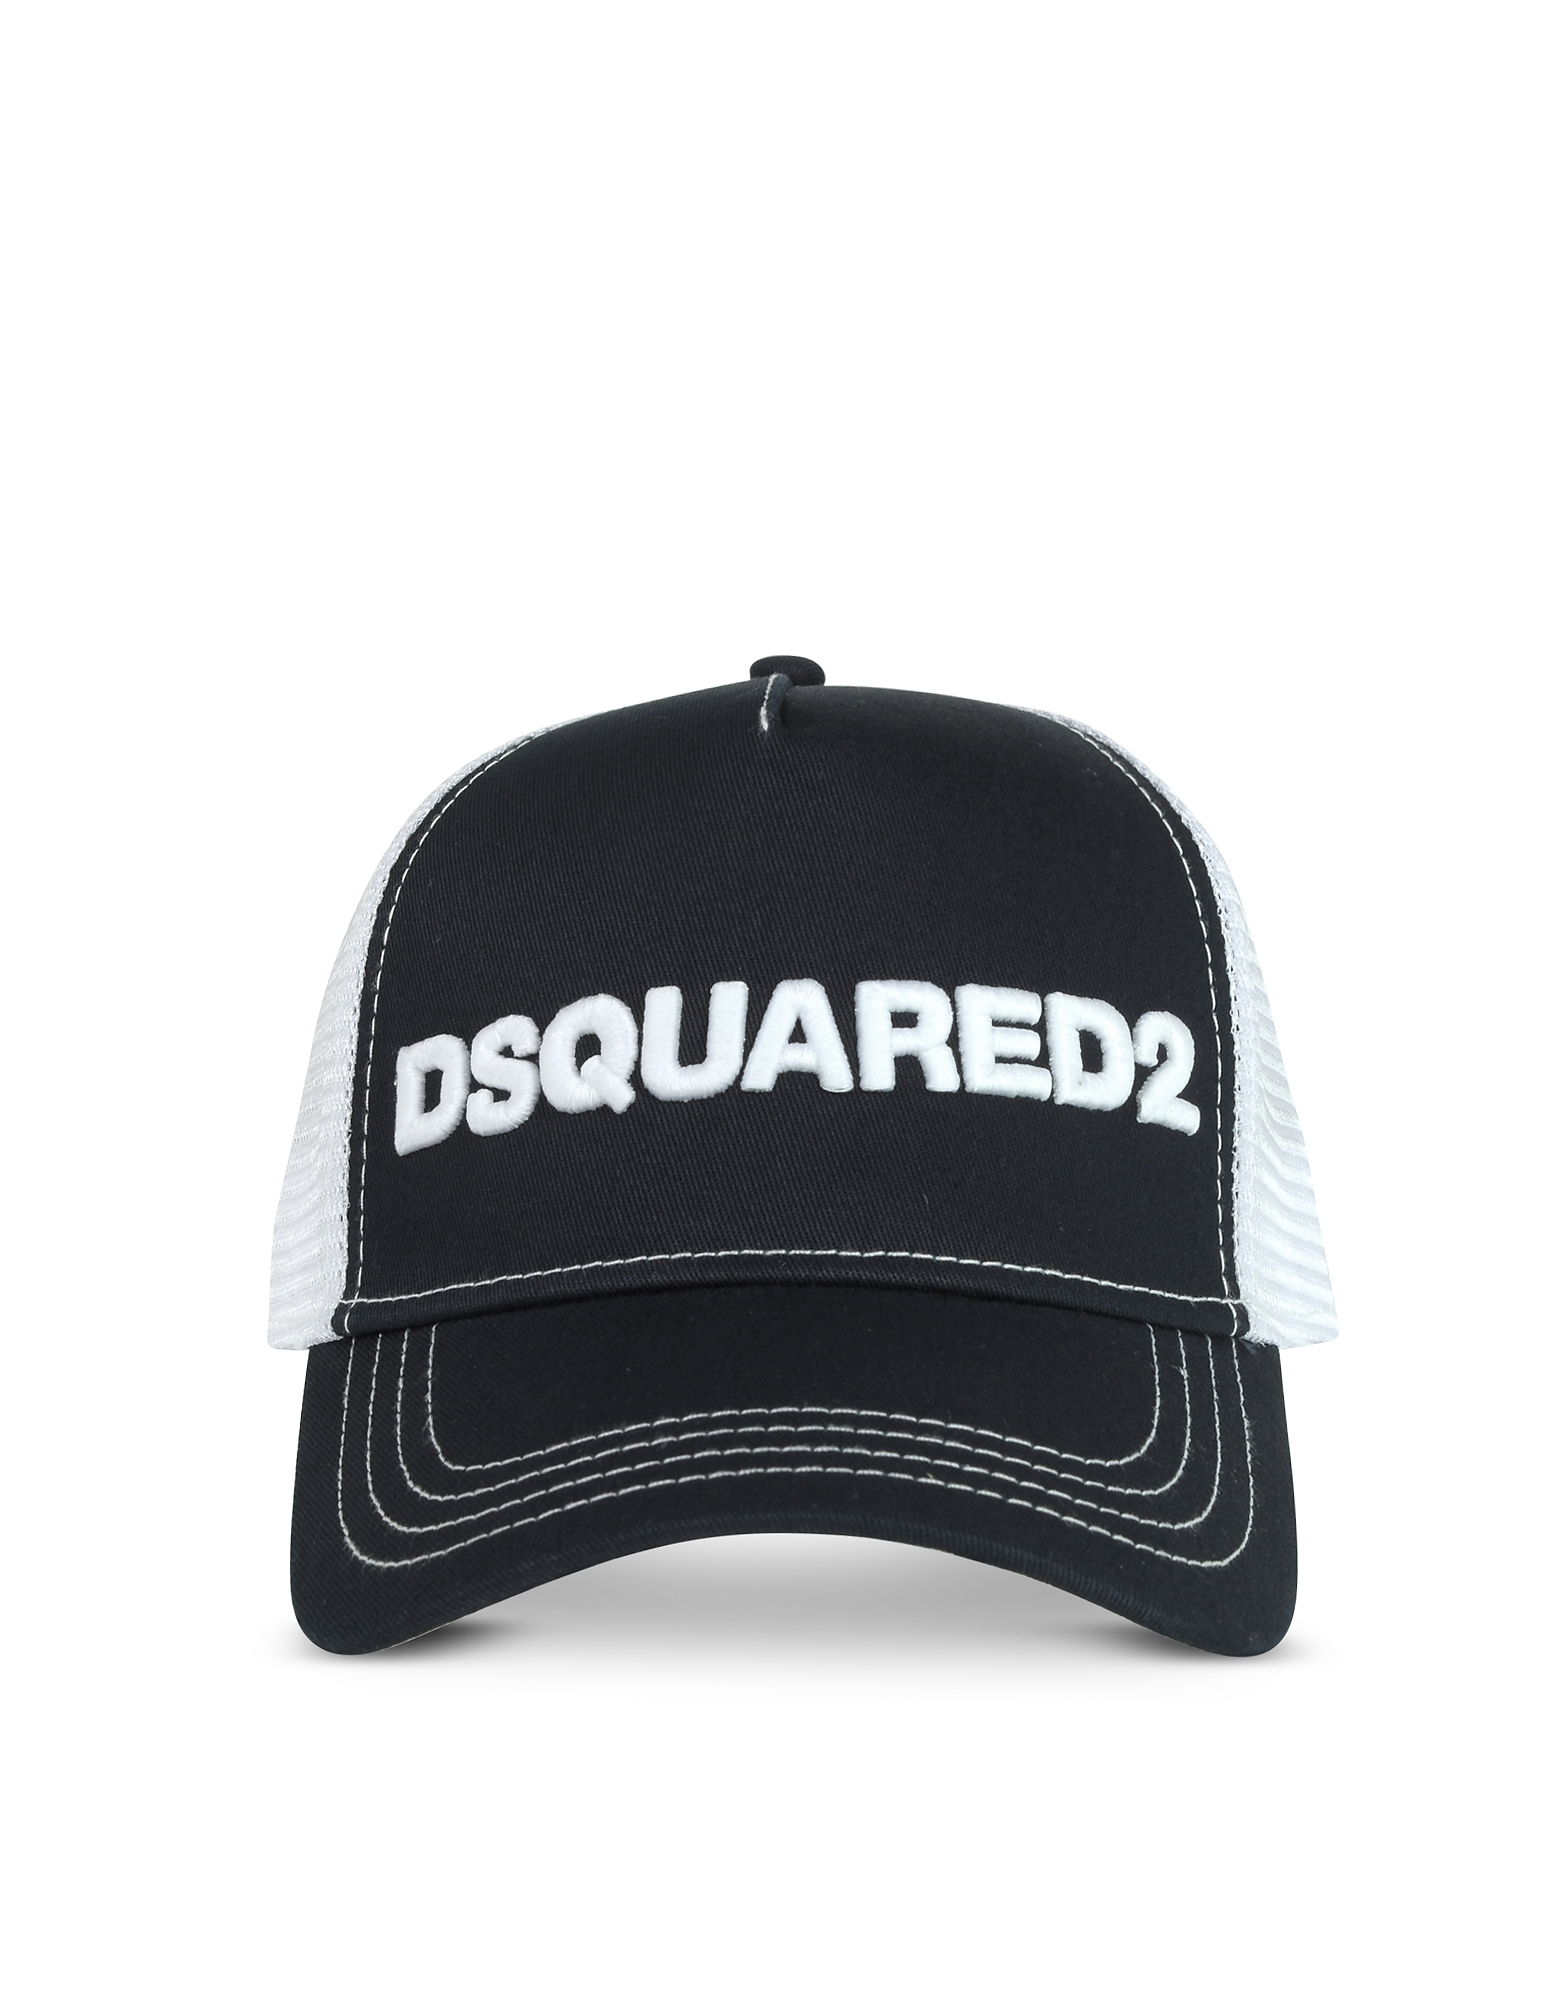 DSquared2 Designer Men's Hats, Men's Navy and White Cotton & Mesh Baseball Cap